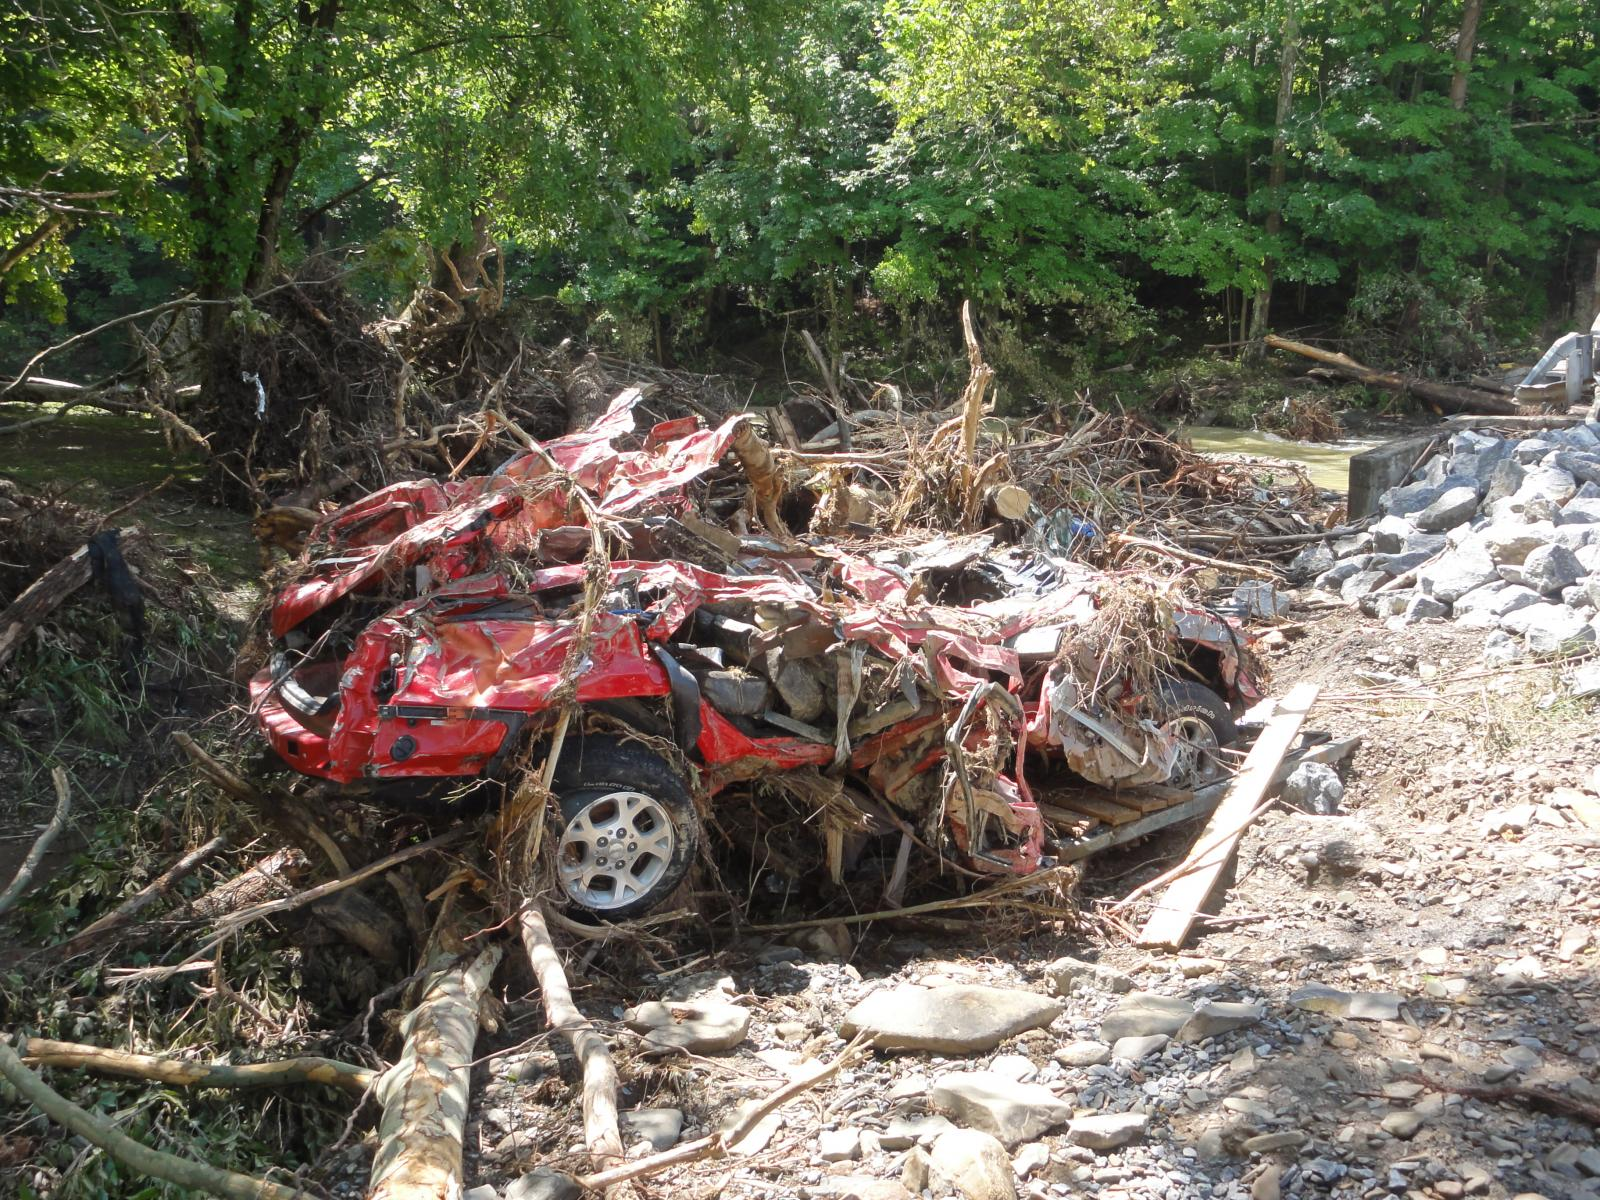 Car destroyed along Howards Creek in Greenbrier County, WV